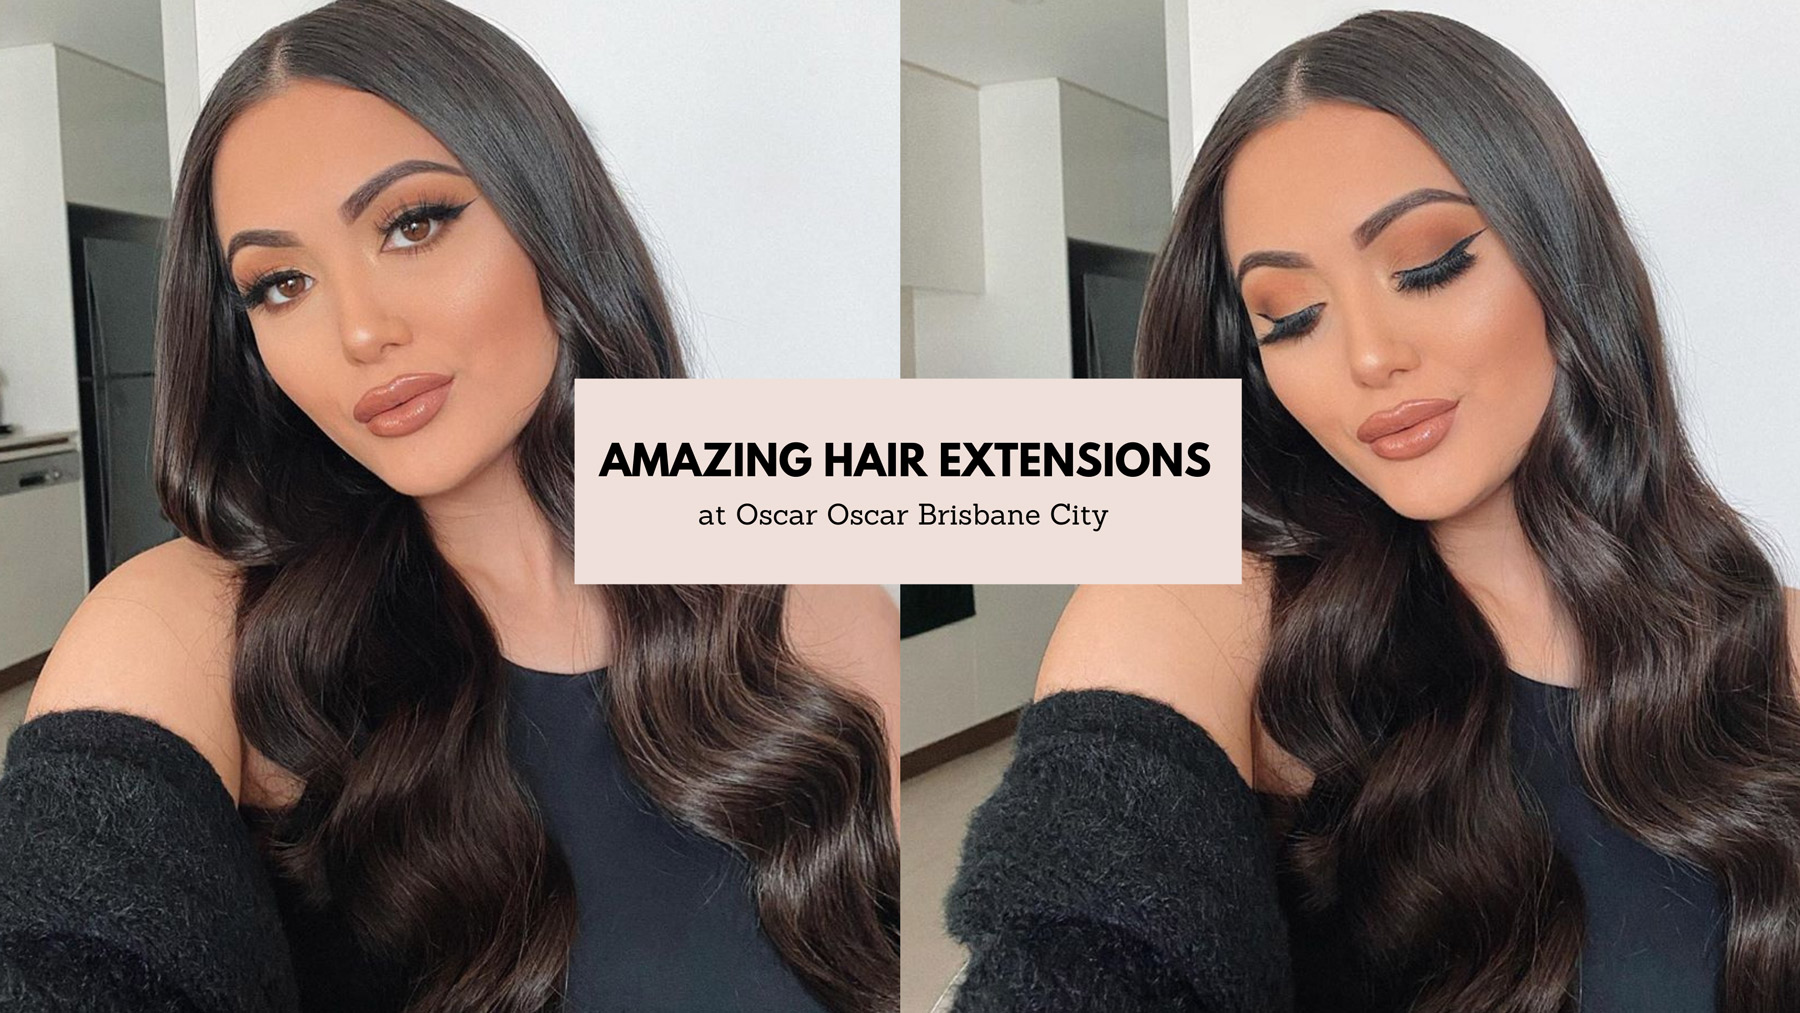 Jessyka with Amazing Hair Extensions